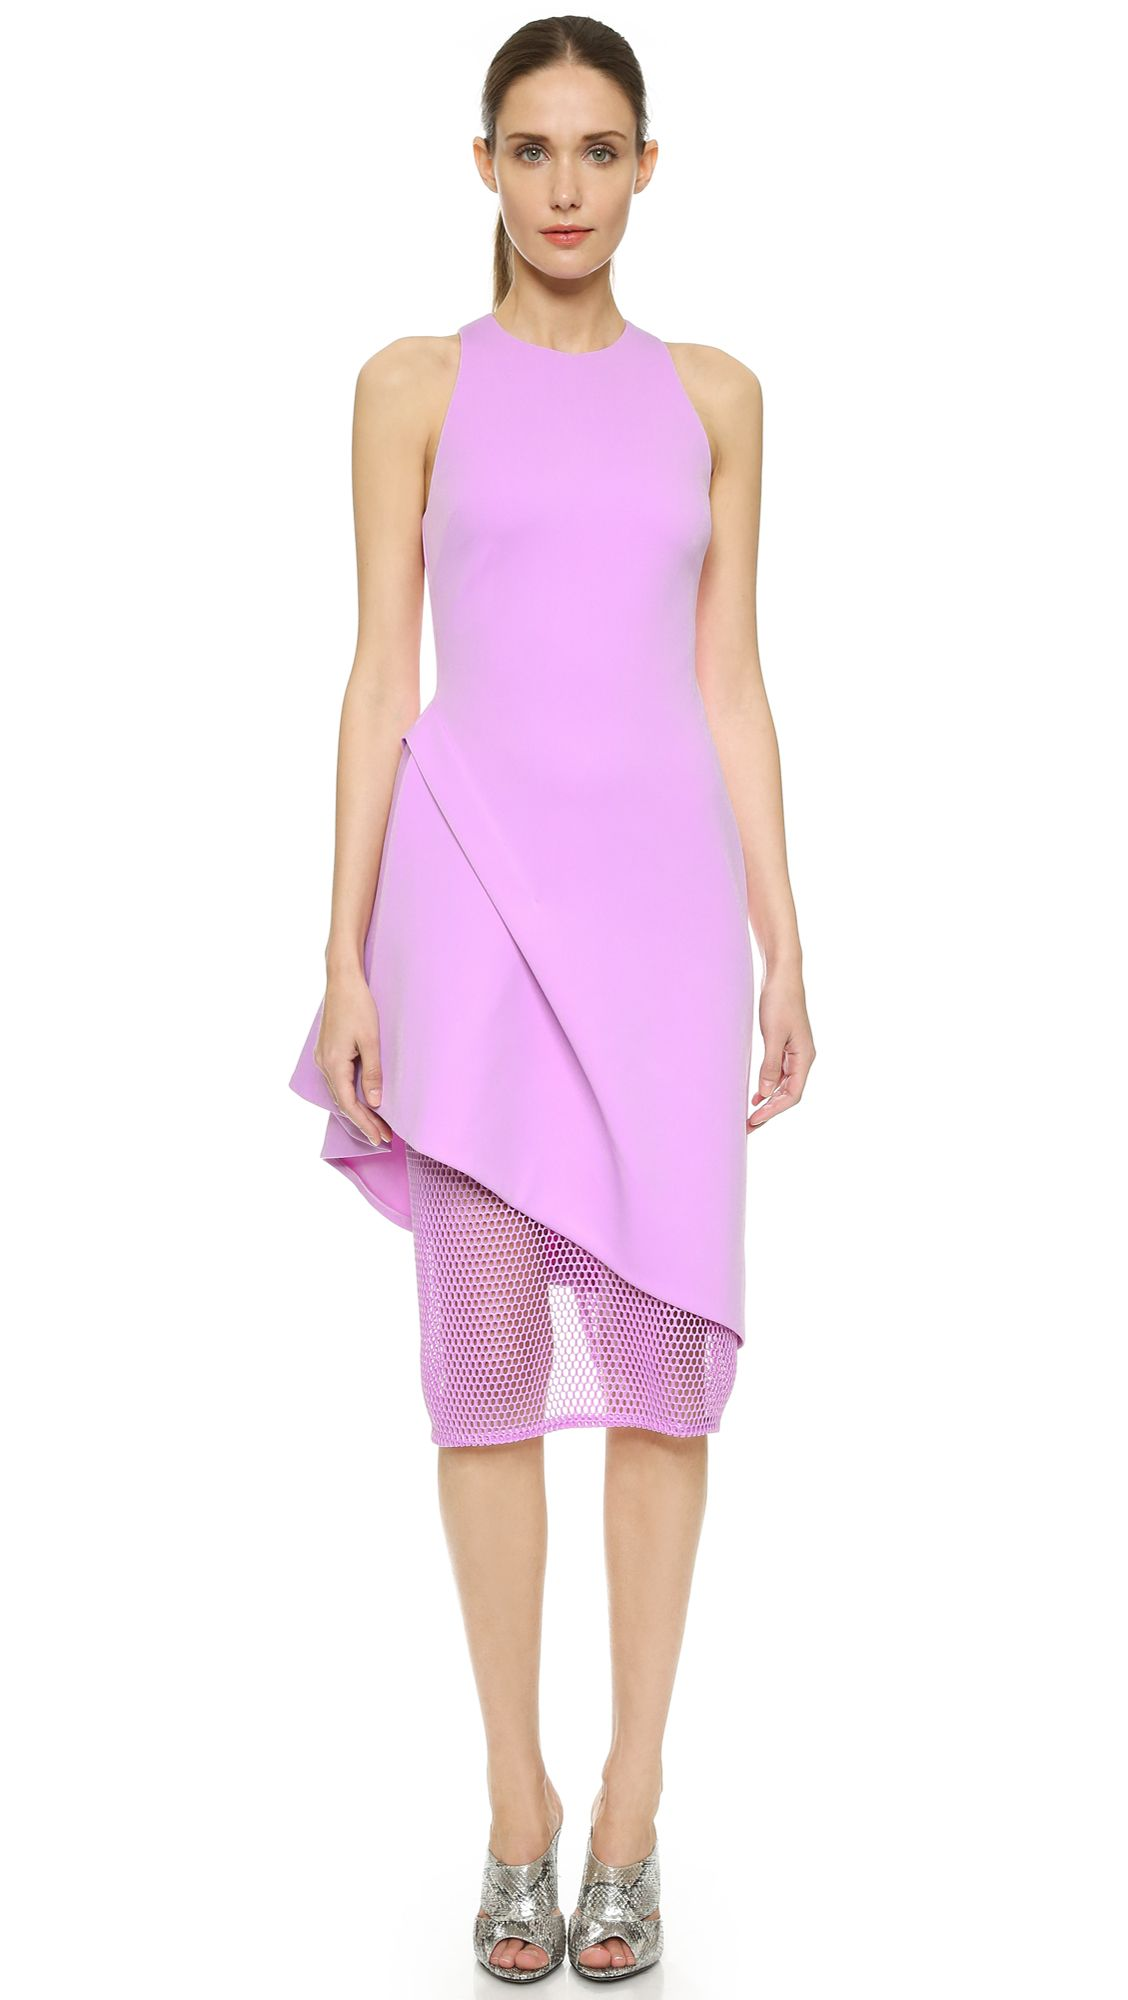 Dresses to wear to a wedding as a guest in april  Cushnie Et Ochs Sheer Panel Sheath Dress  Lilac  SHOPBOPCOM saved